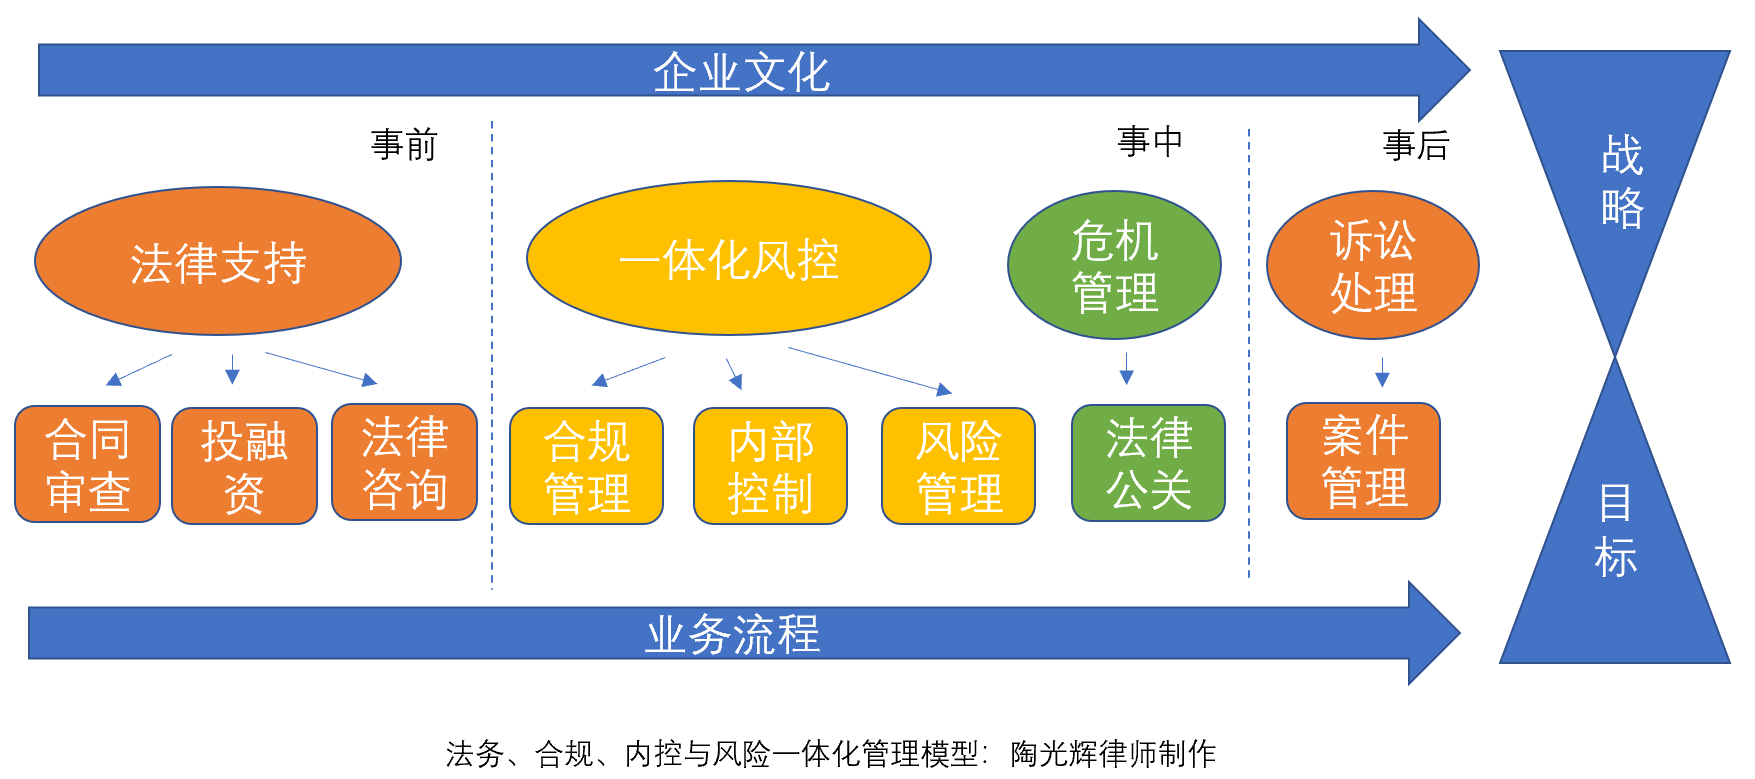 Word图片1.png